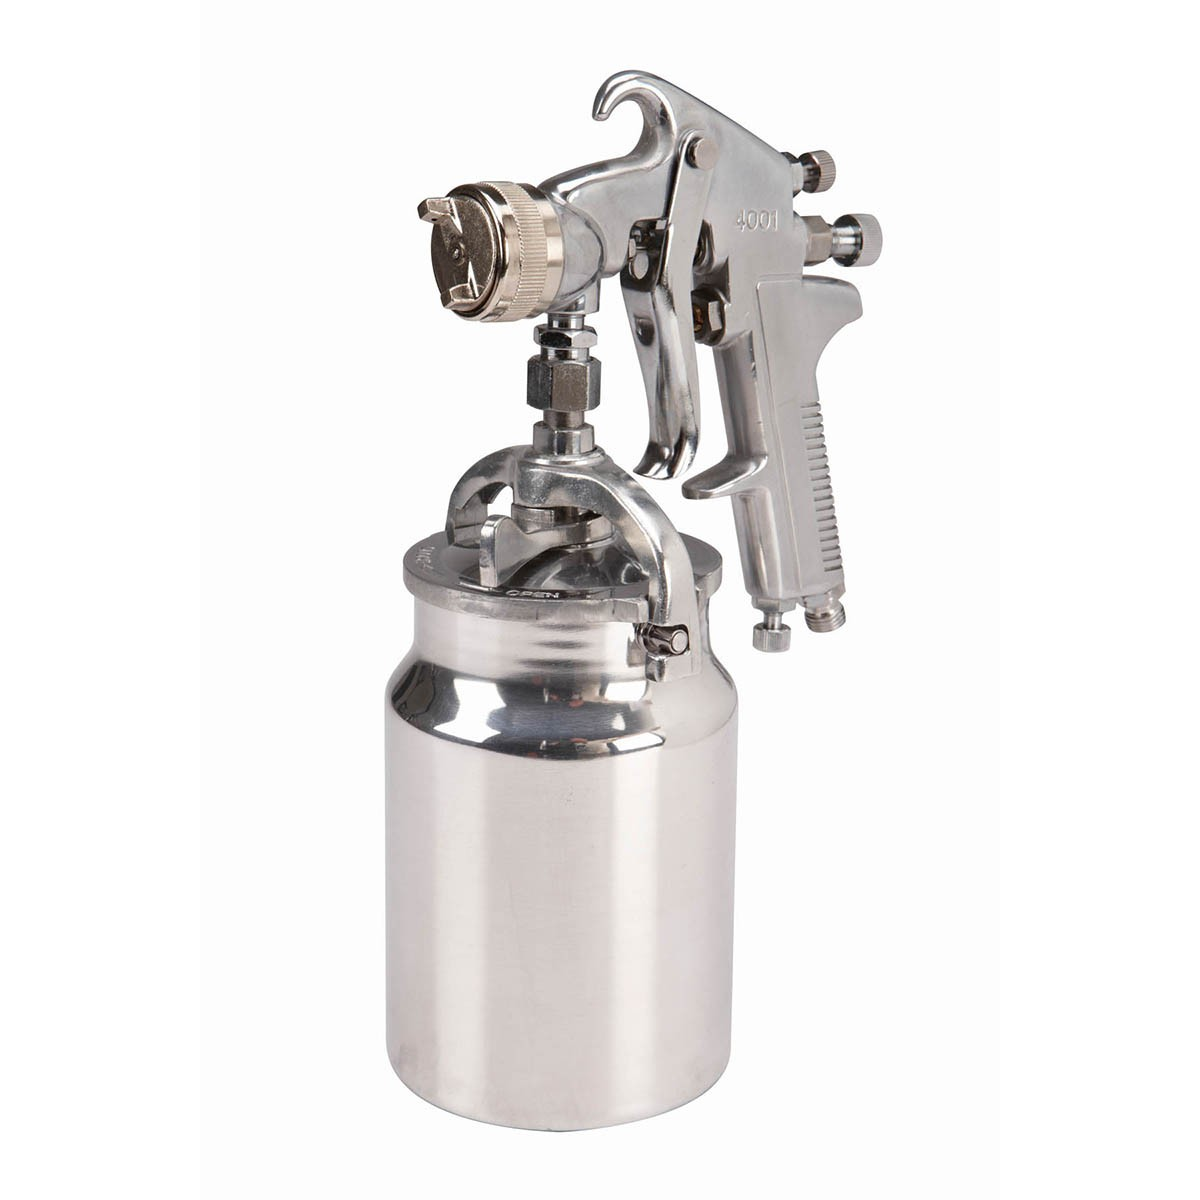 32 oz. Automotive Siphon Feed Air Spray Gun